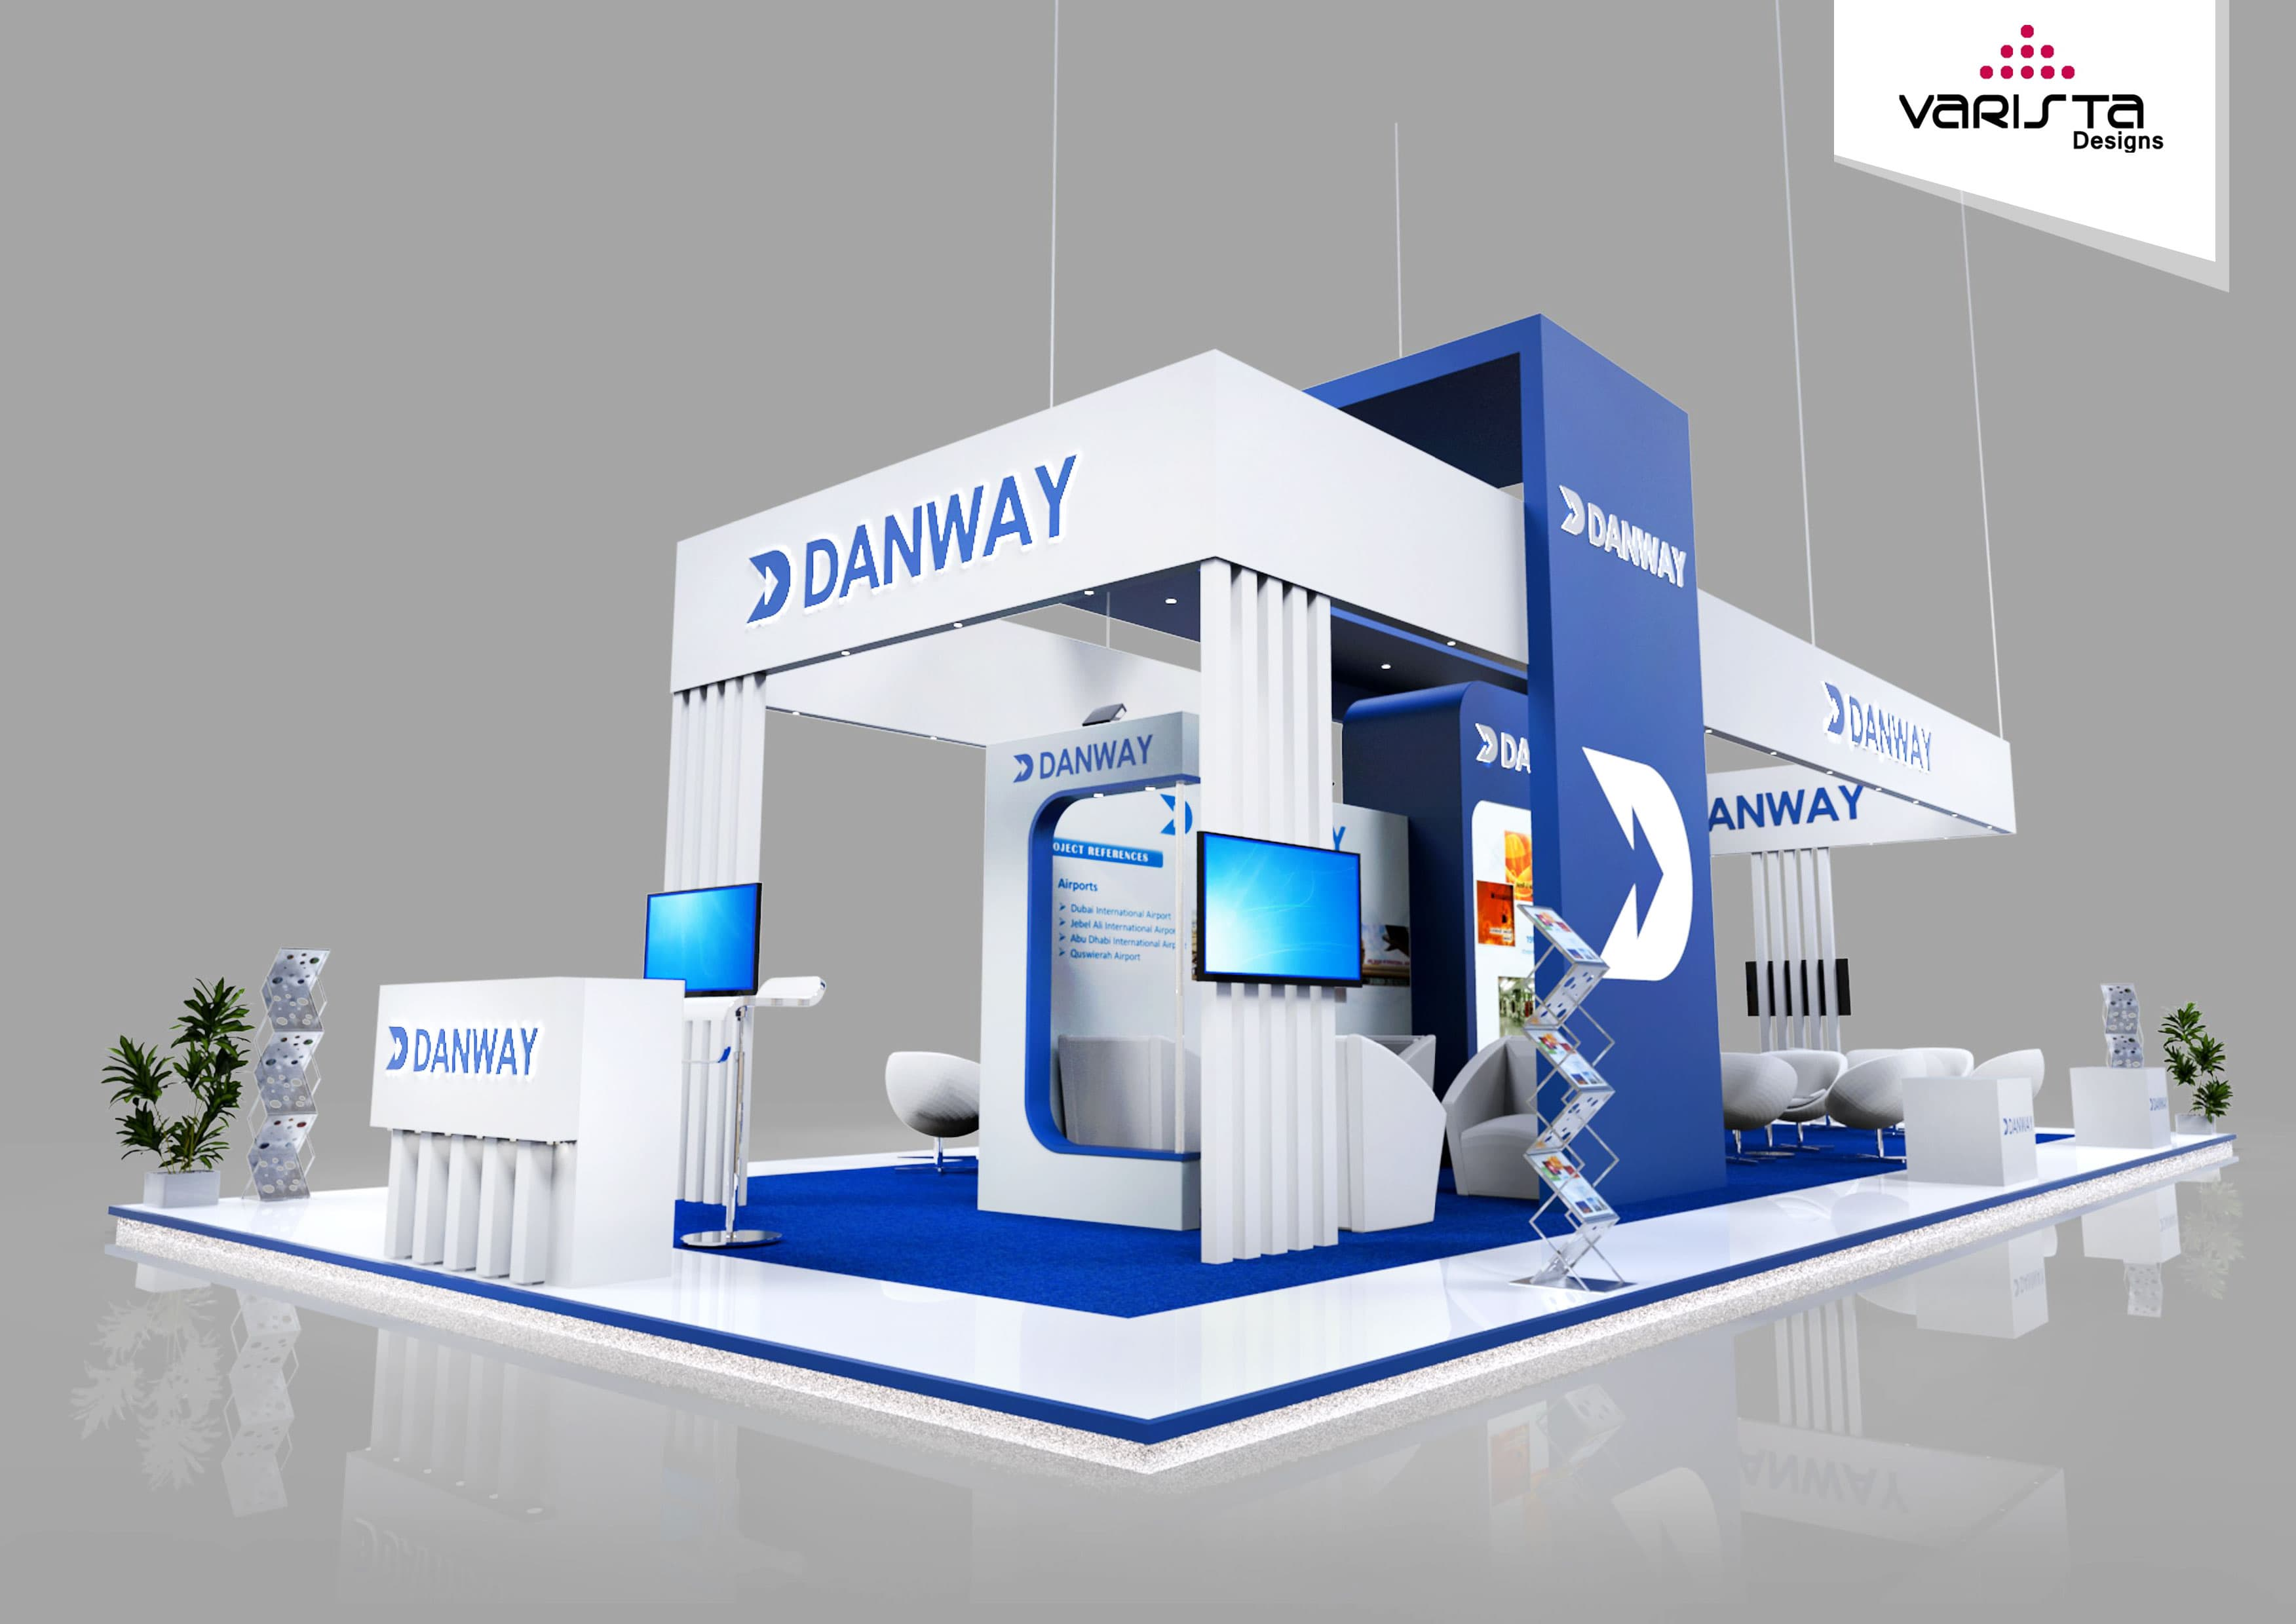 Exhibition Stand Design Images : Get free designs proposal for exhibition booth interior